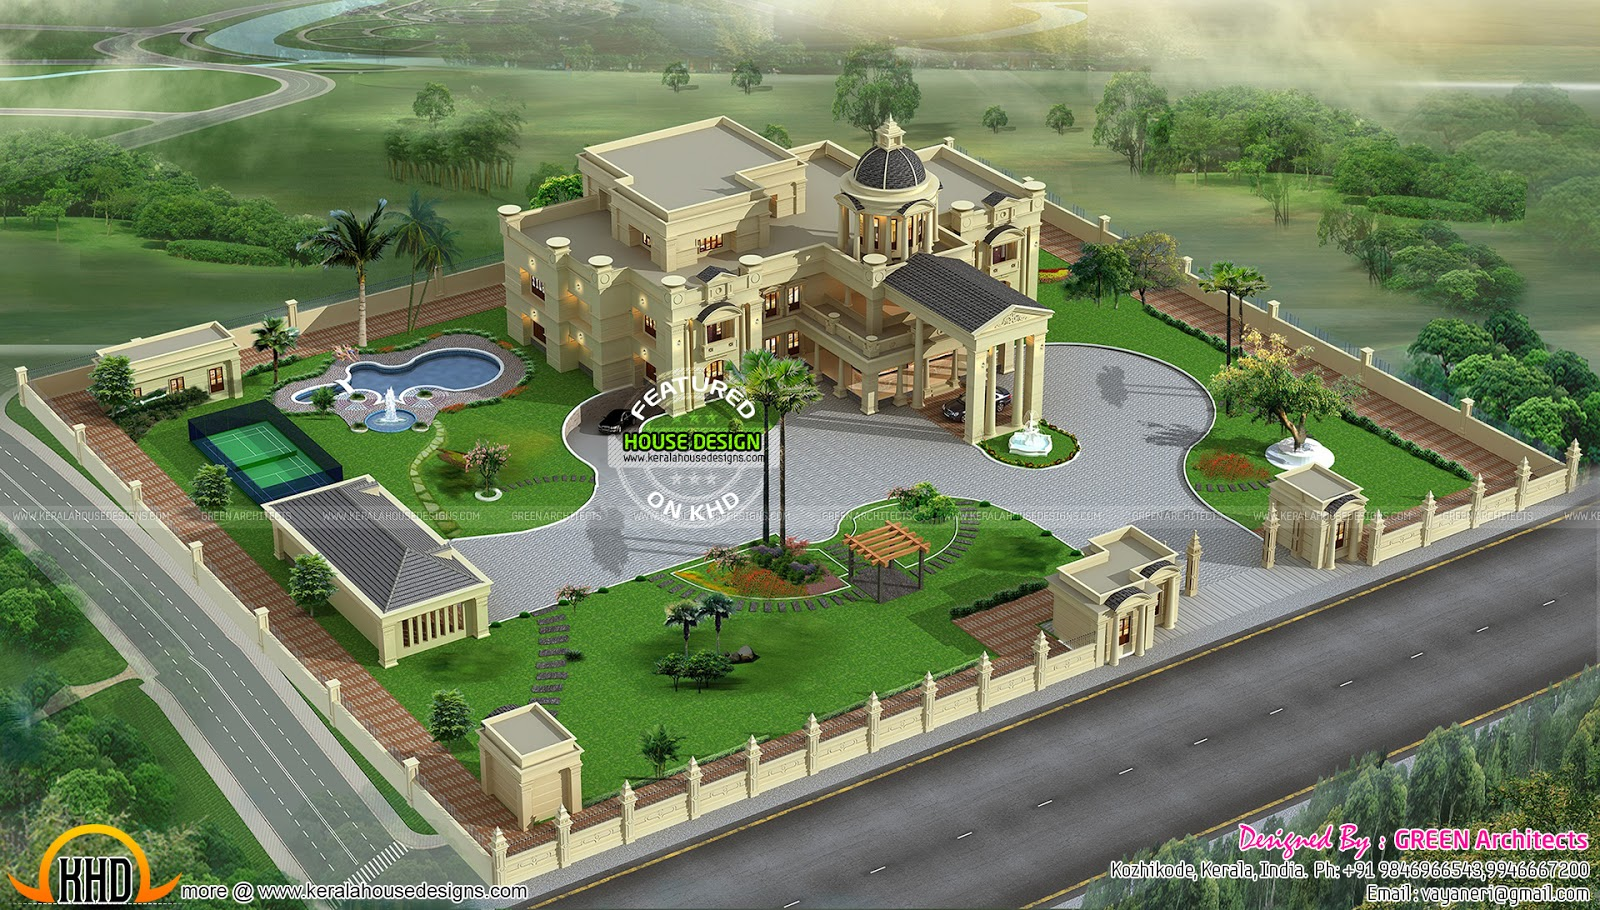 Mansion design in kerala kerala home design and floor plans for Mansion house design